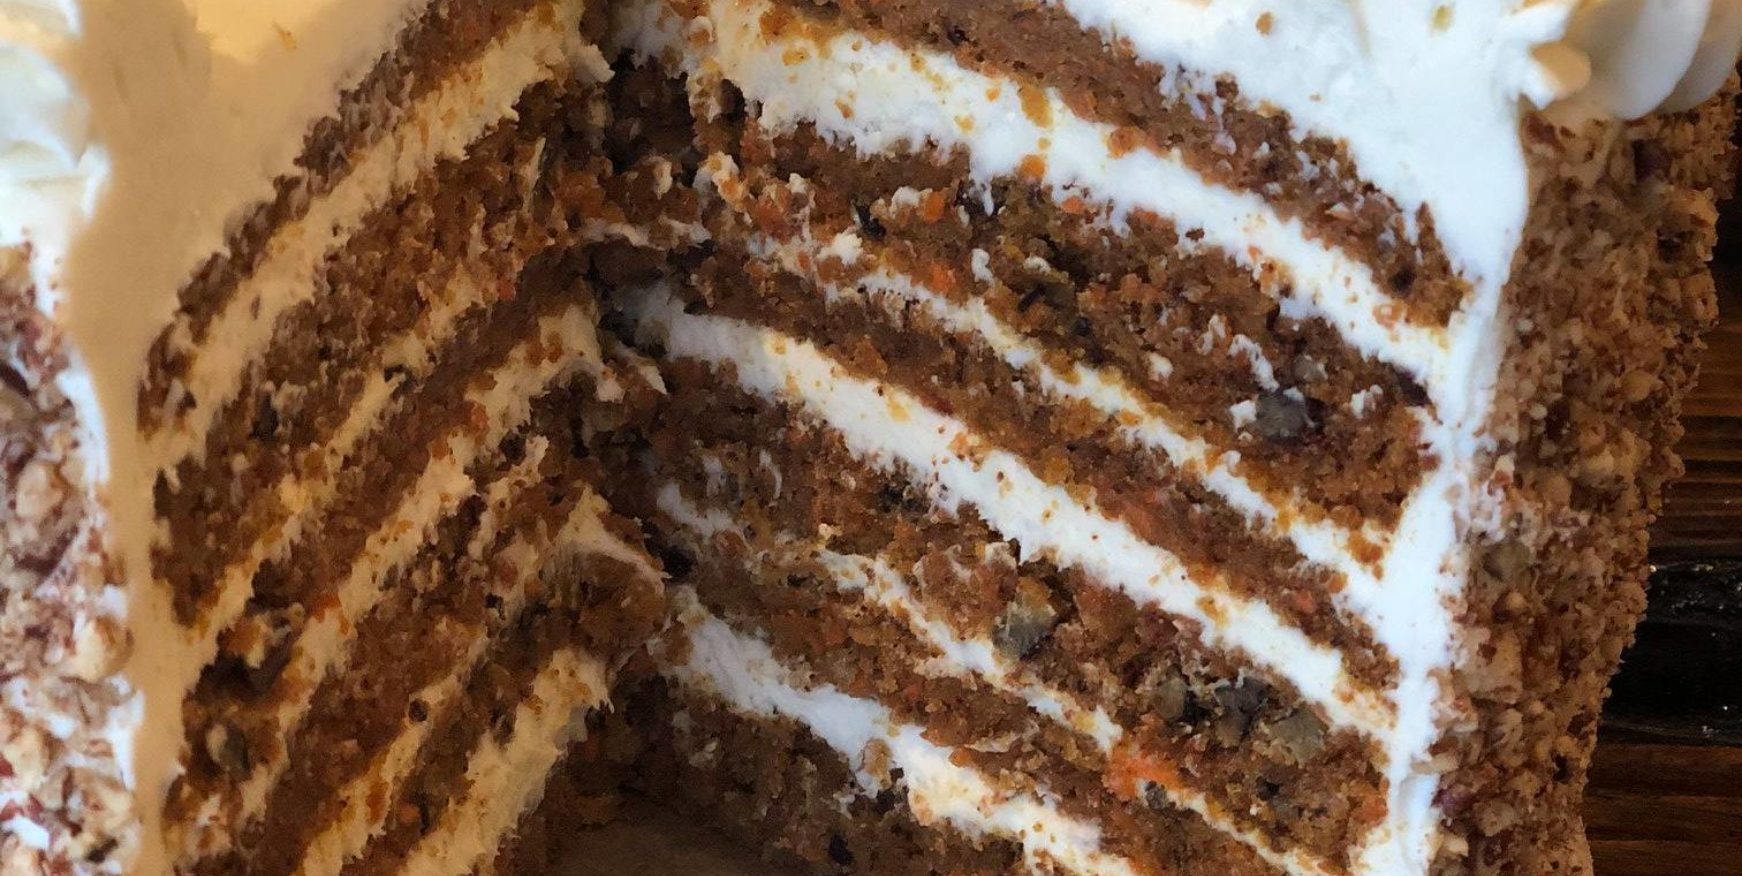 carrot cake from corporate catering partner crickles & co